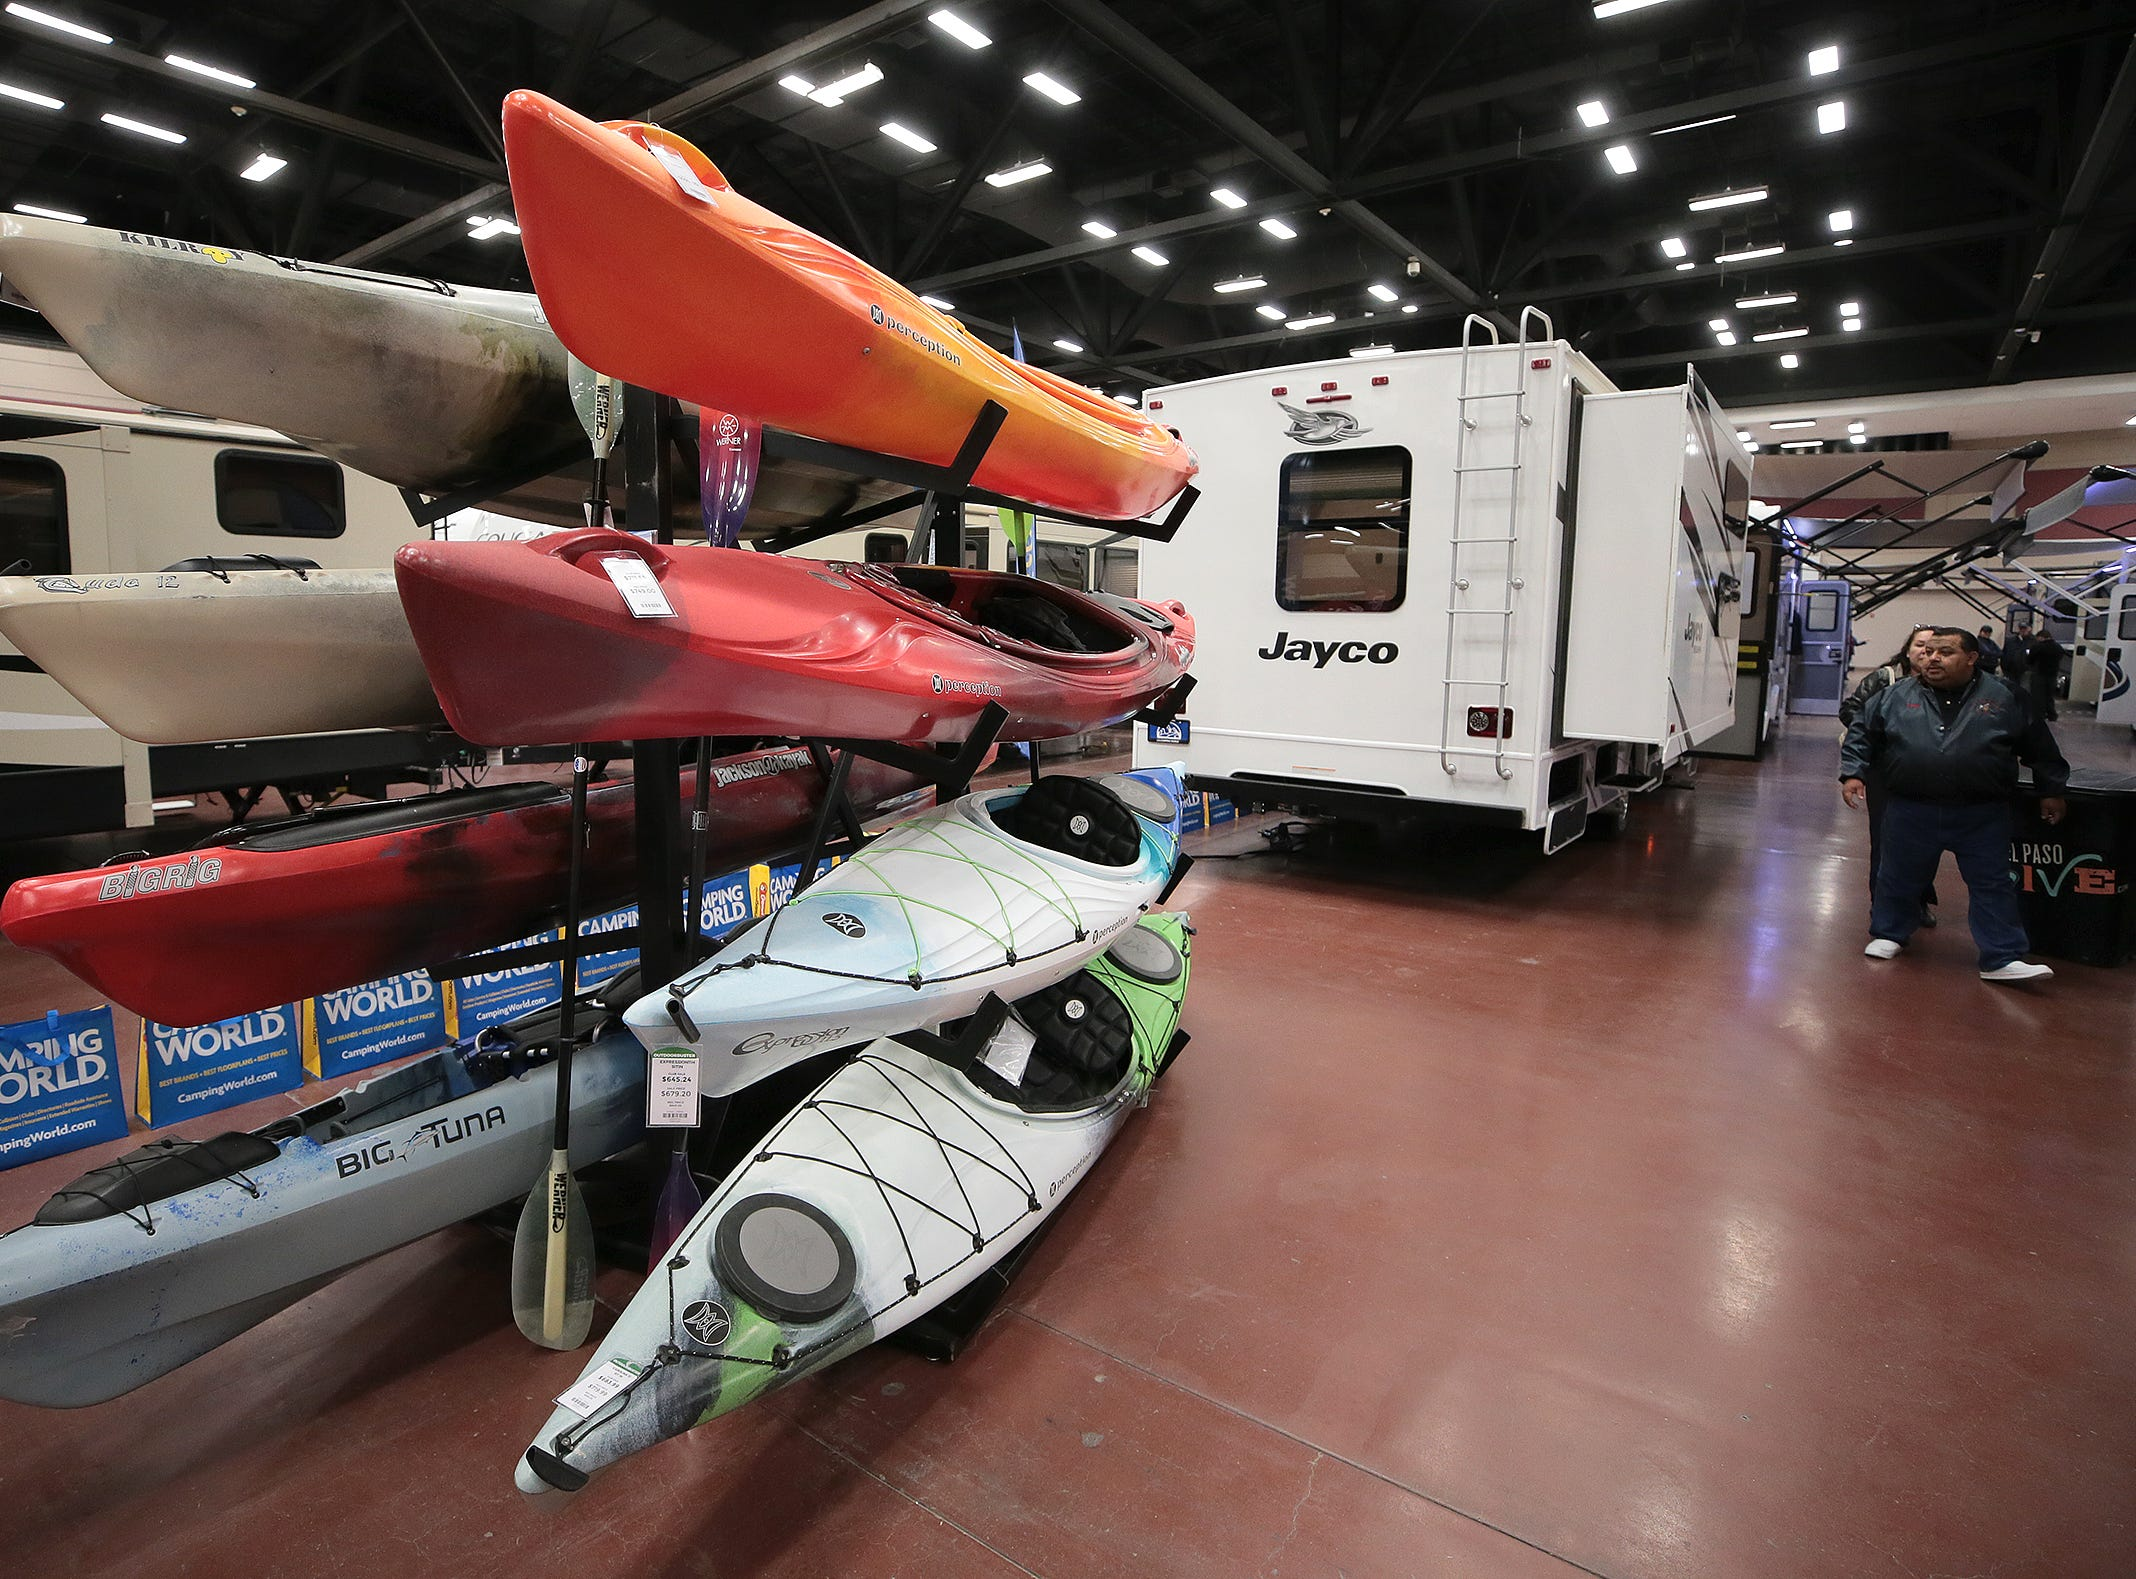 The 2019 El Paso RV Show is camped out at the Judson F. Williams Convention Center through Sunday.